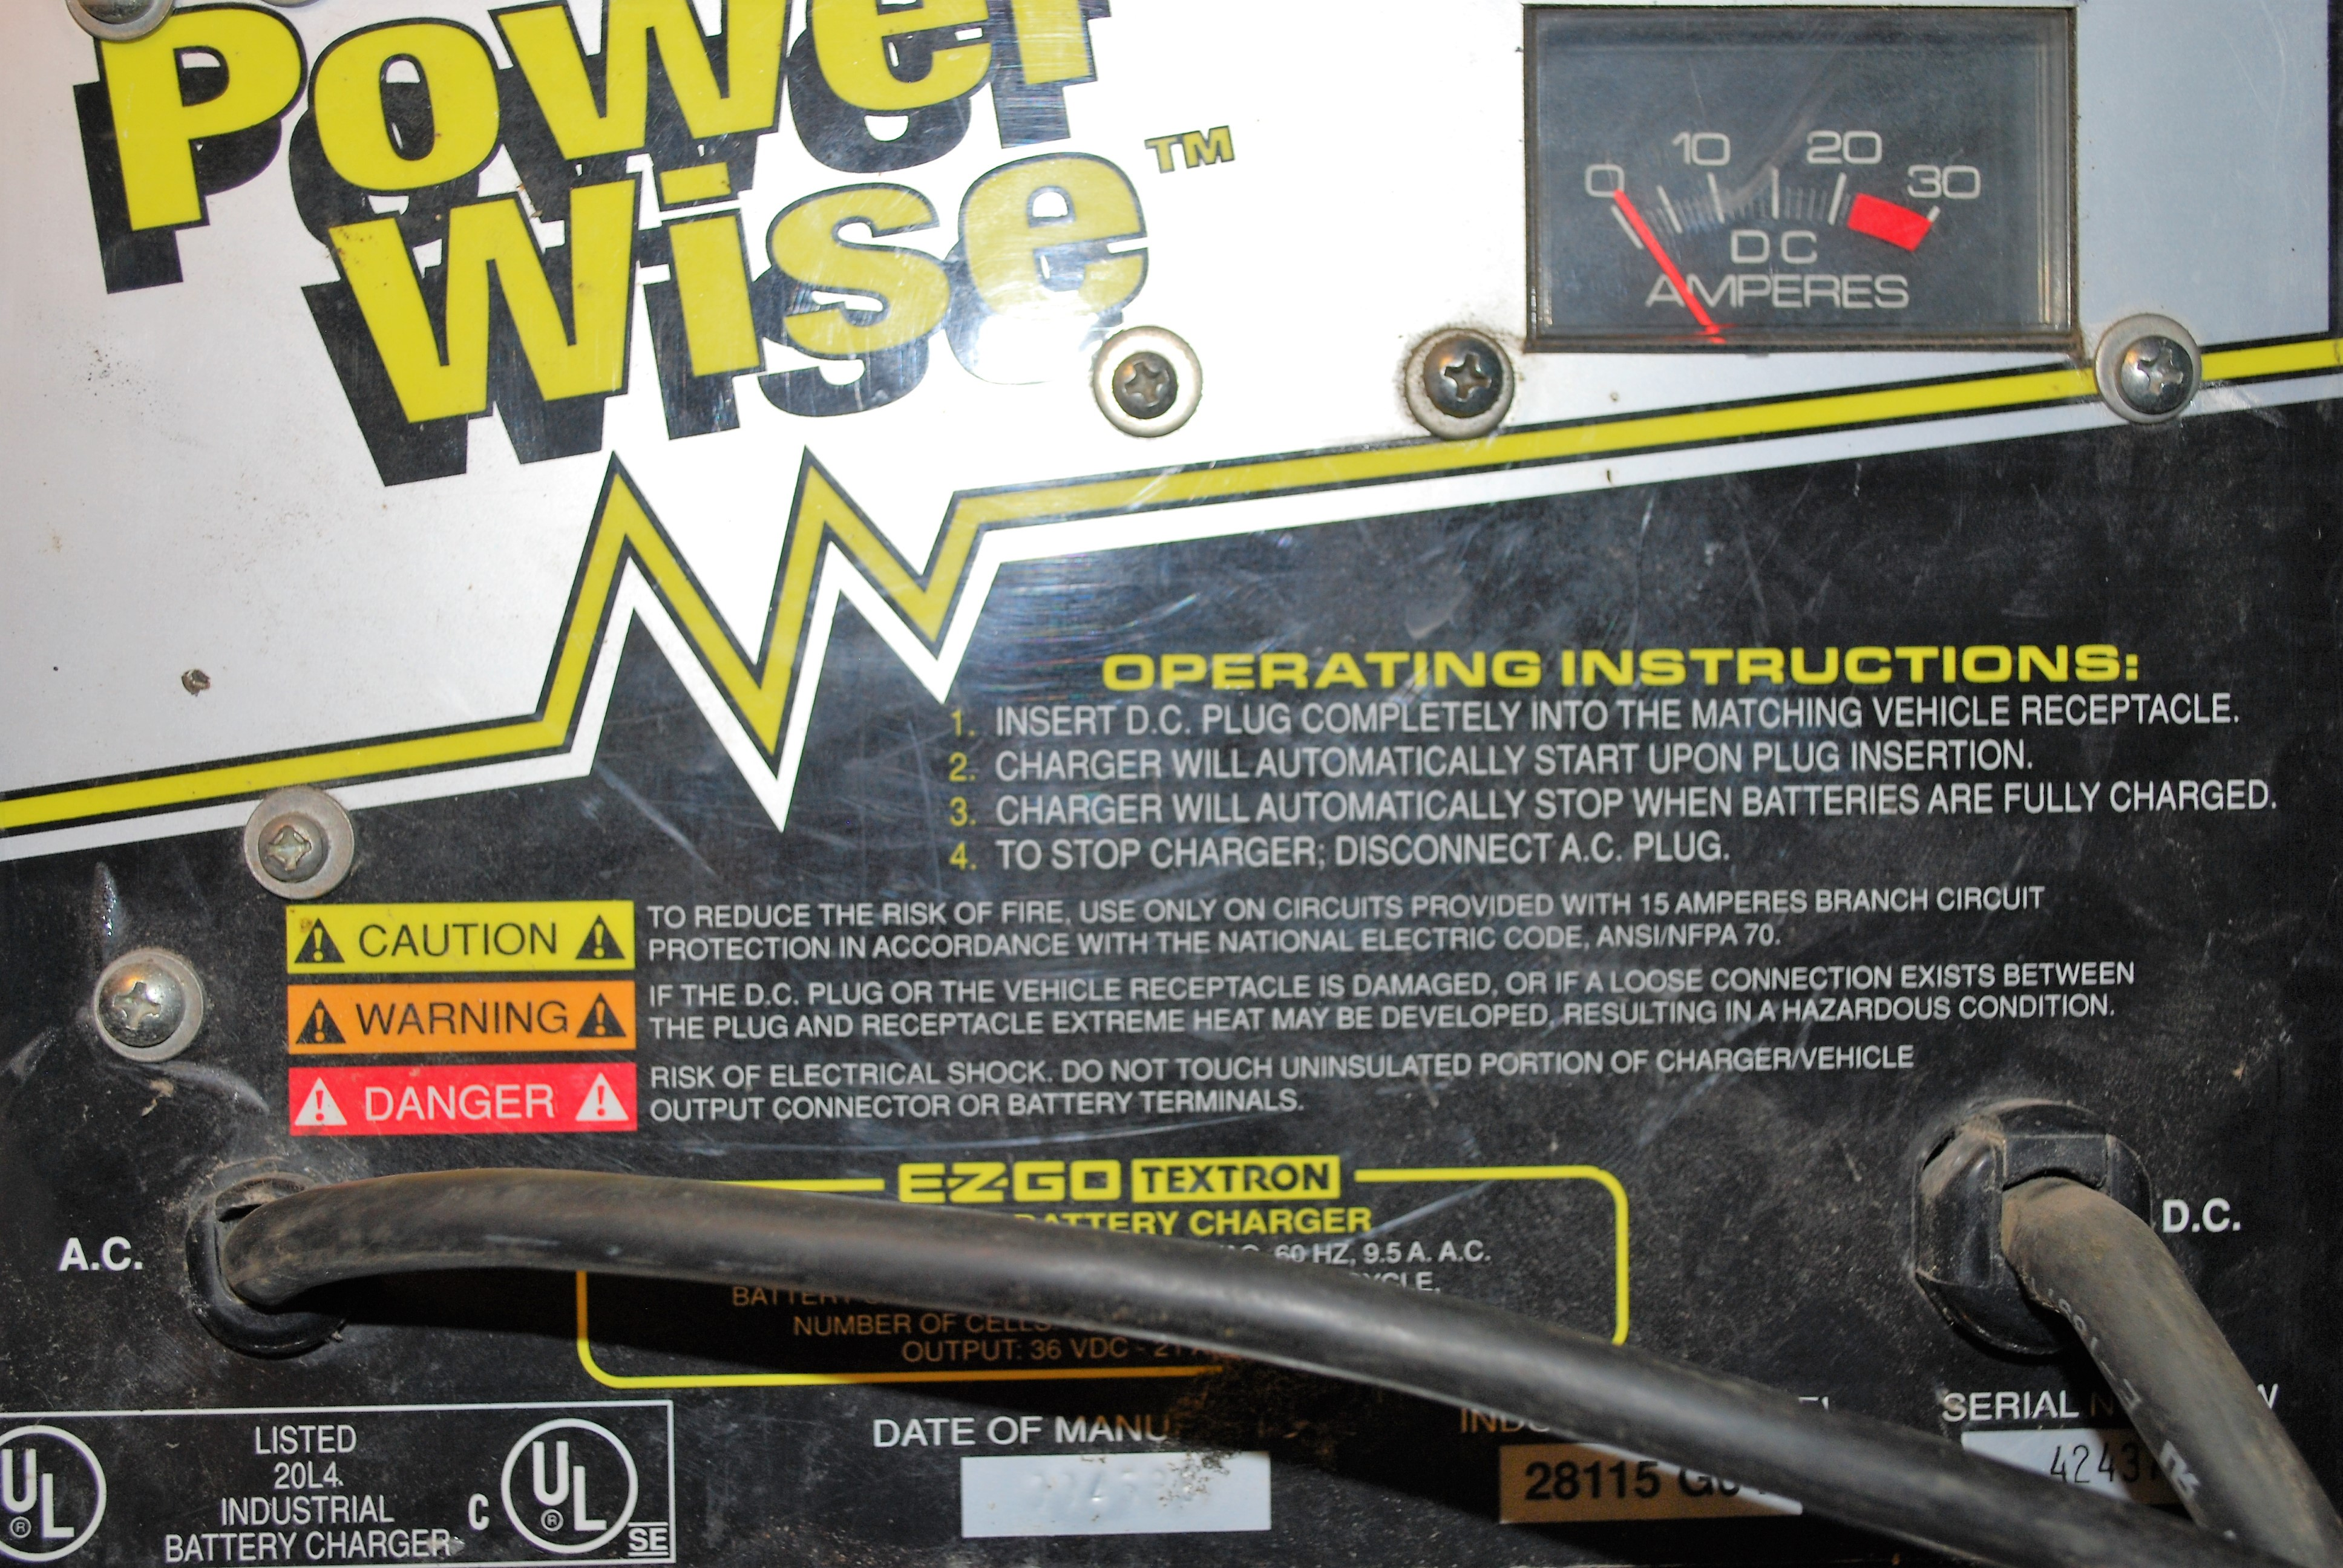 Powerwise 28115-G04